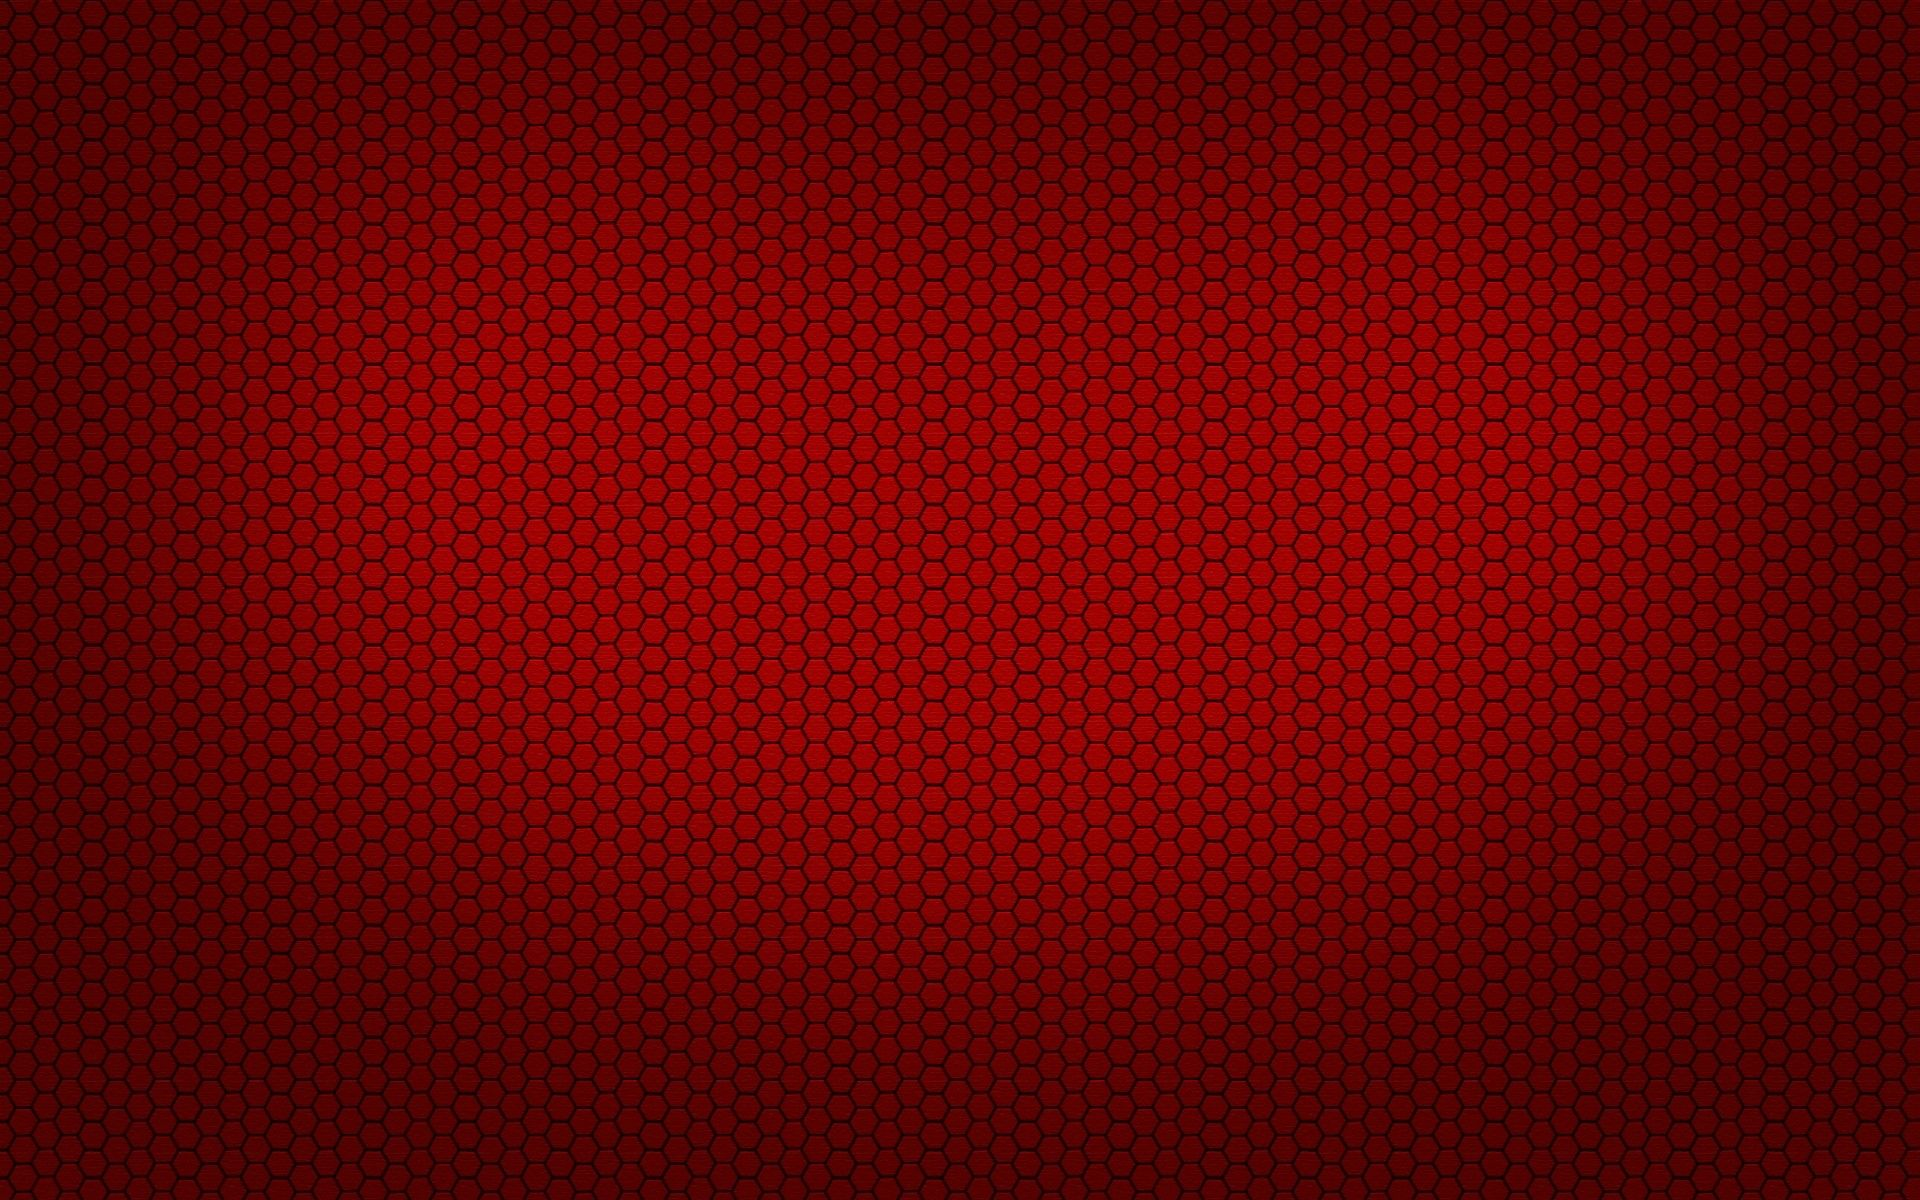 25 Free Plain Backgrounds For Desktop Magazines And